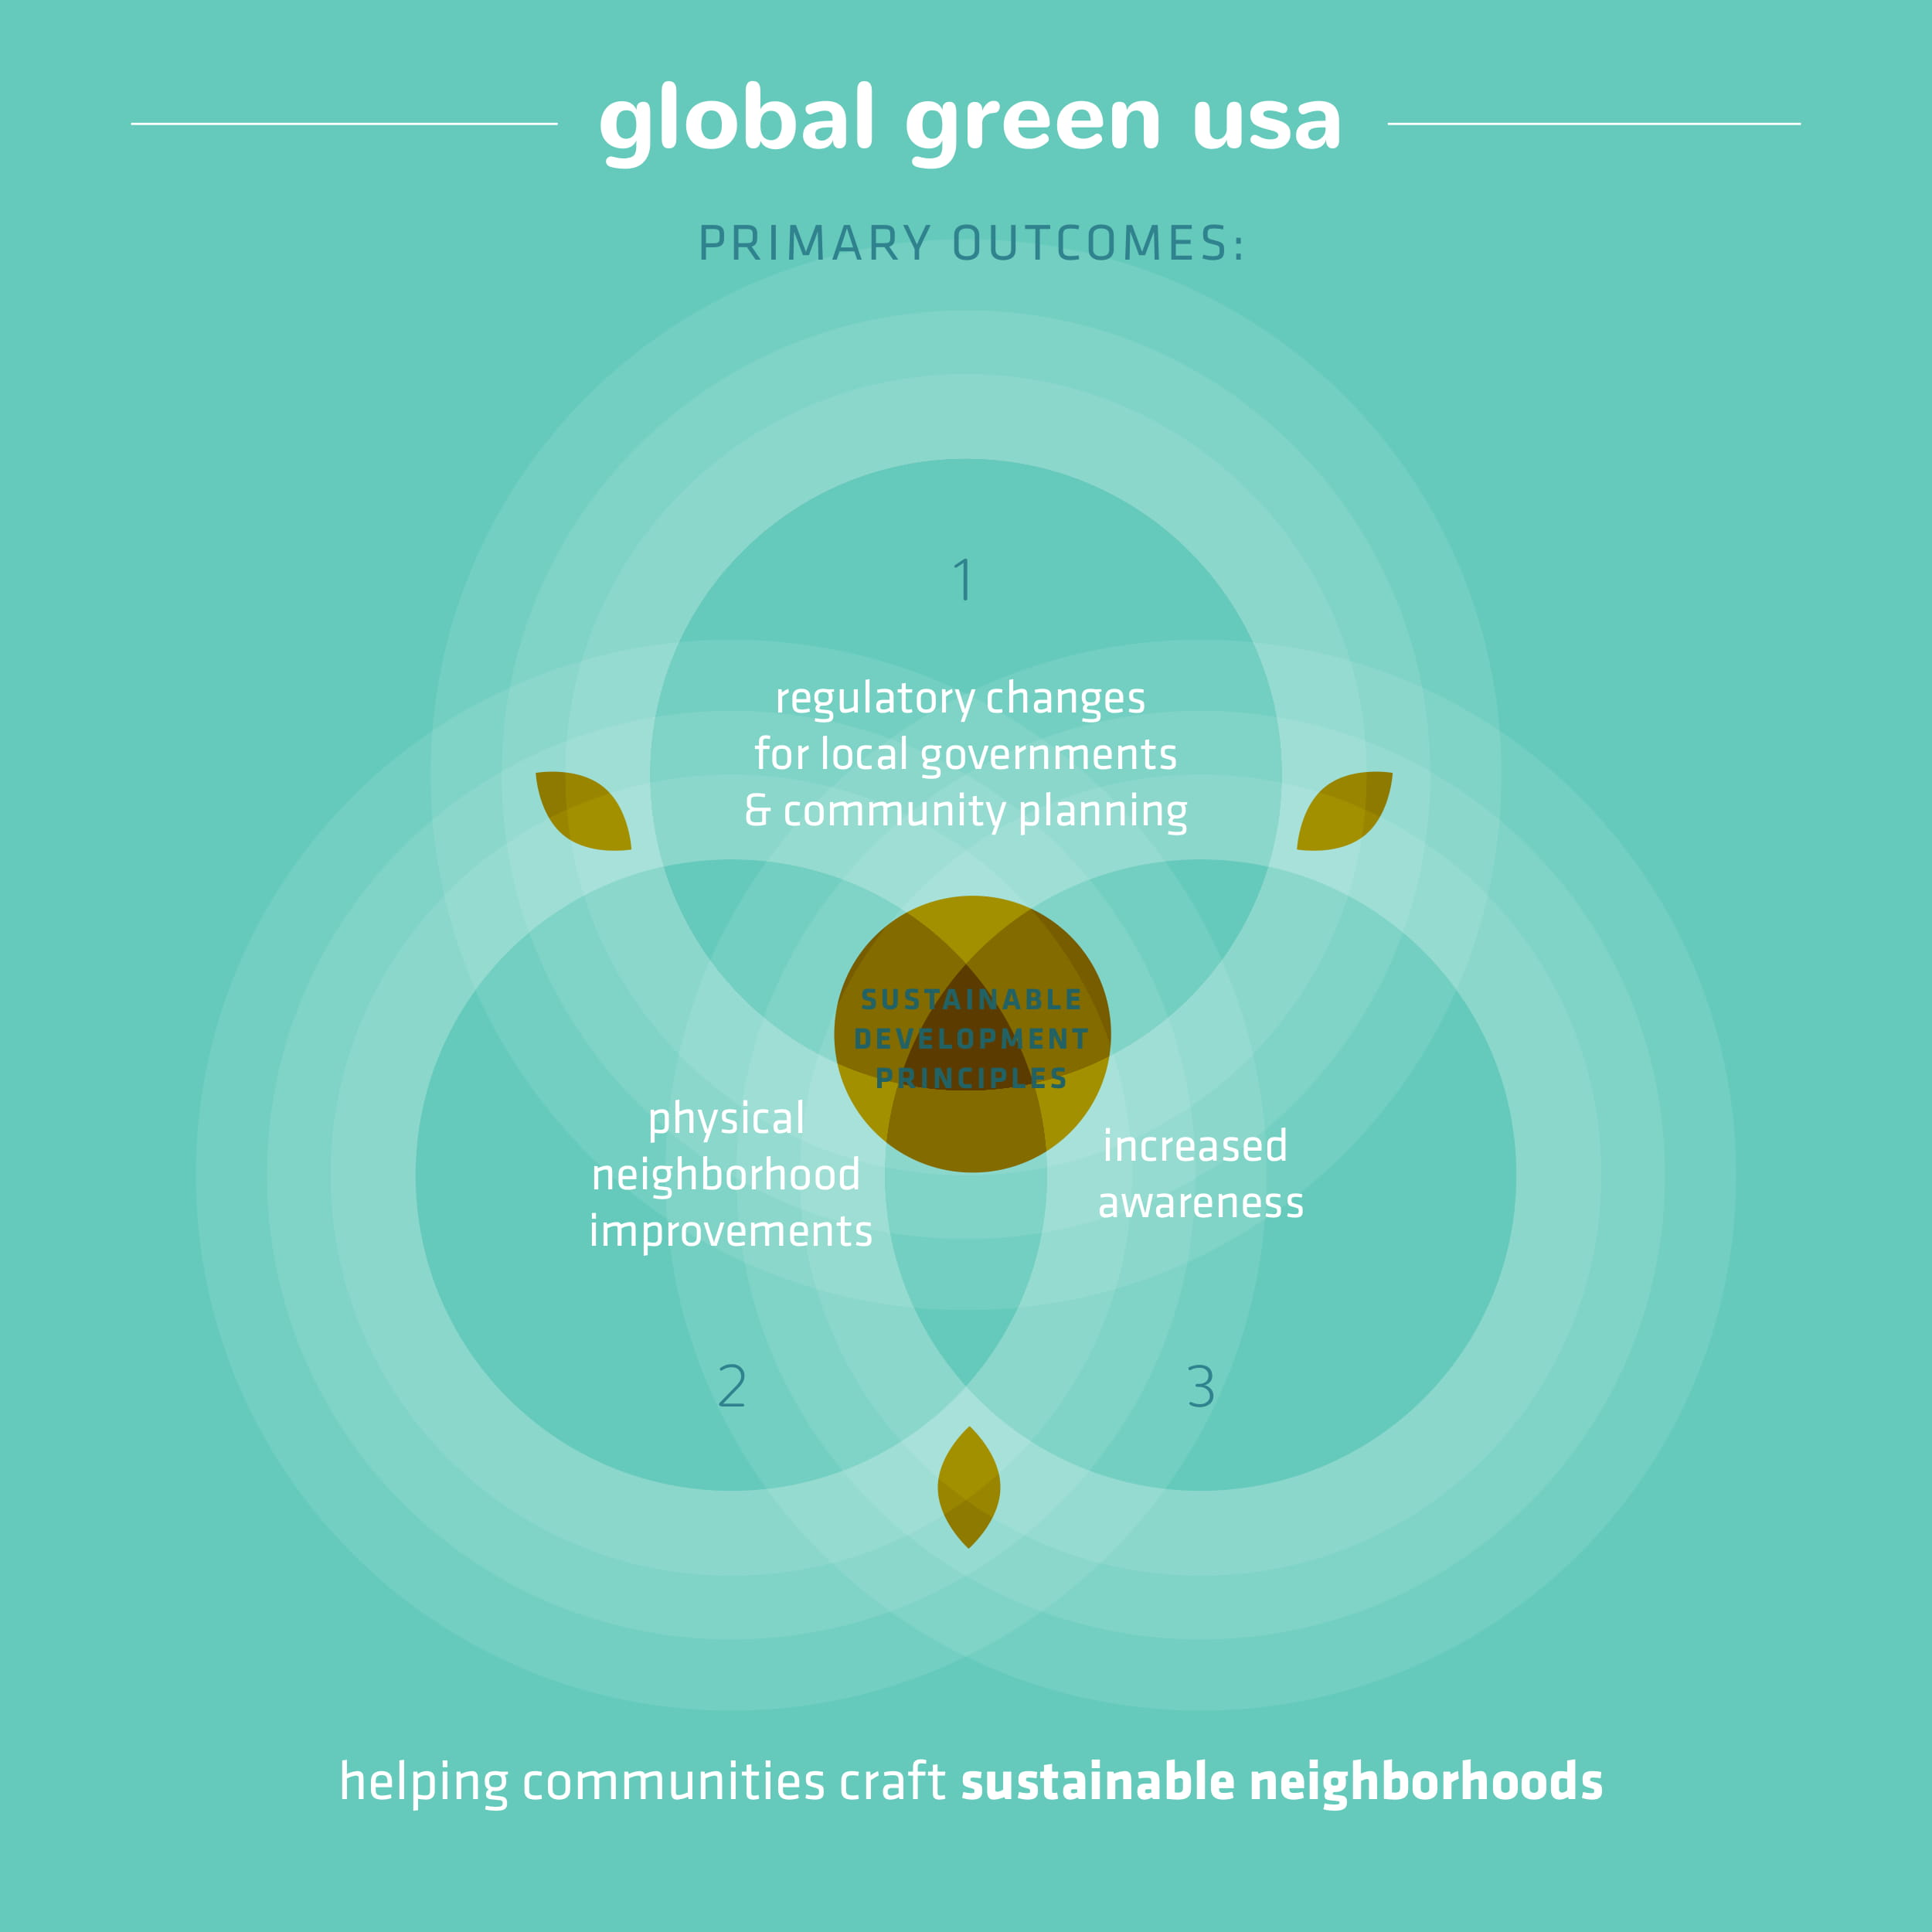 globalgreen_graphics1-3_v1-4.jpg